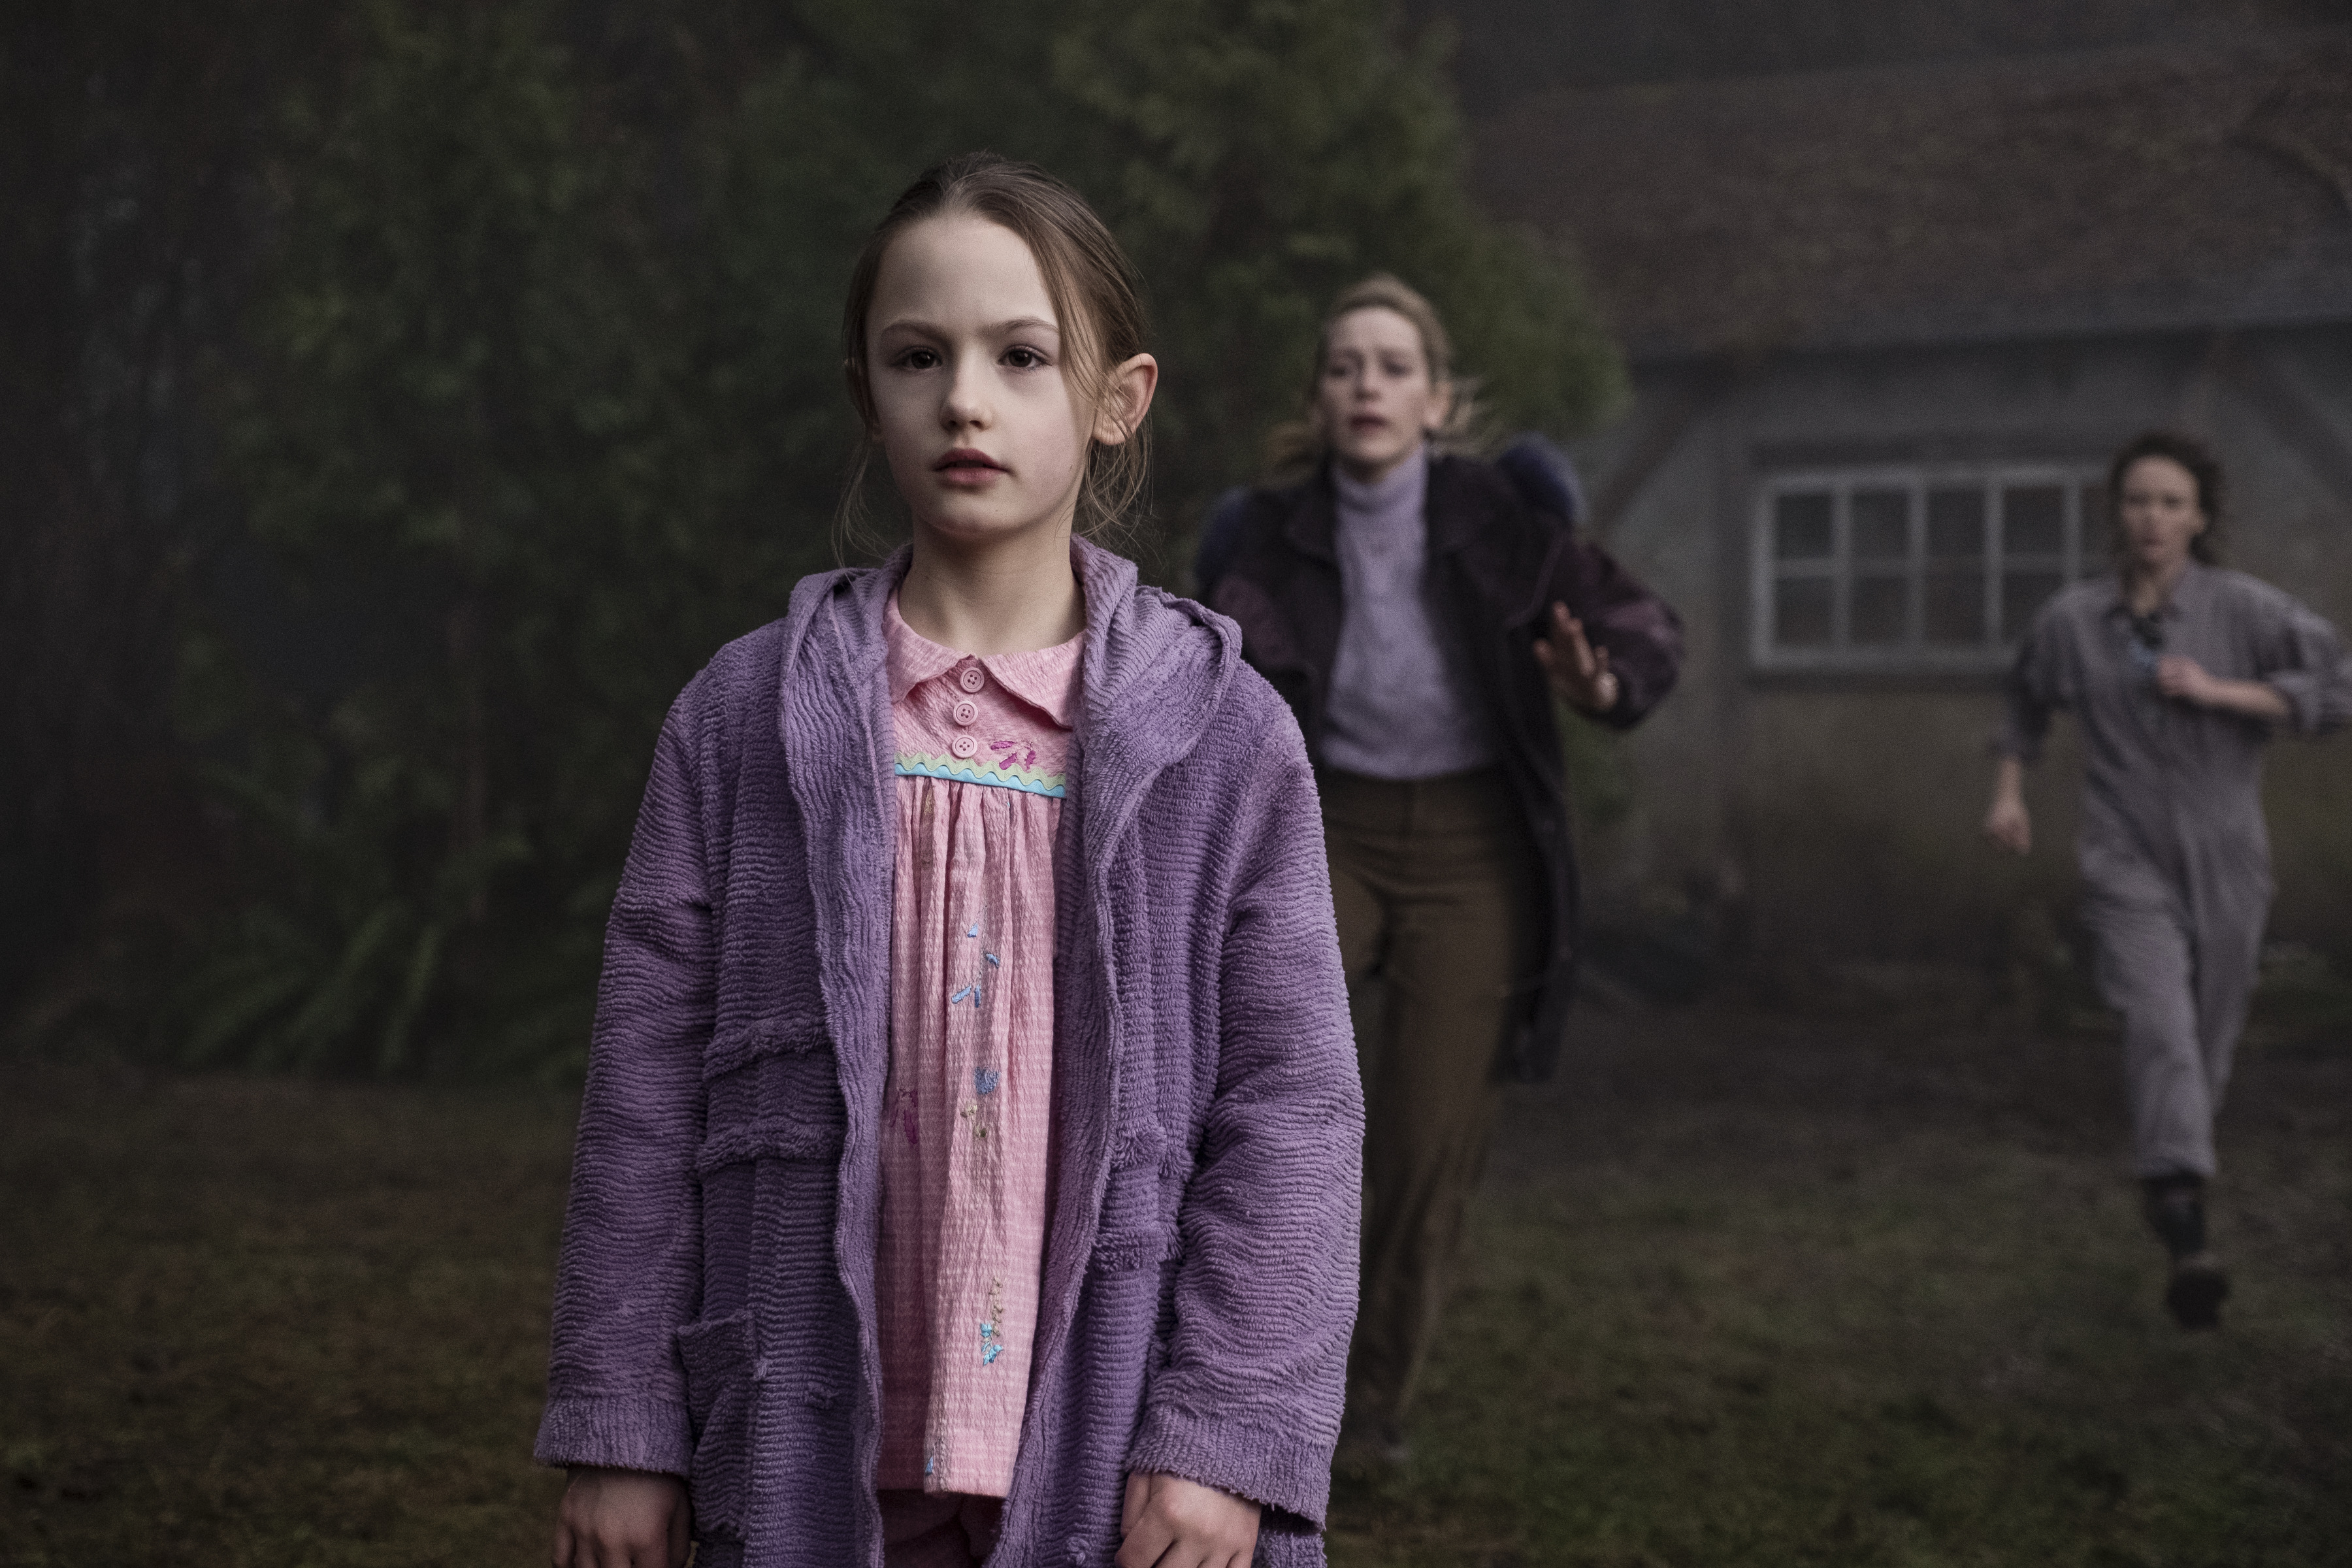 Amelia Eve, Victoria Pedretti, and Amelie Bea Smith in The Haunting of Bly Manor (2020)